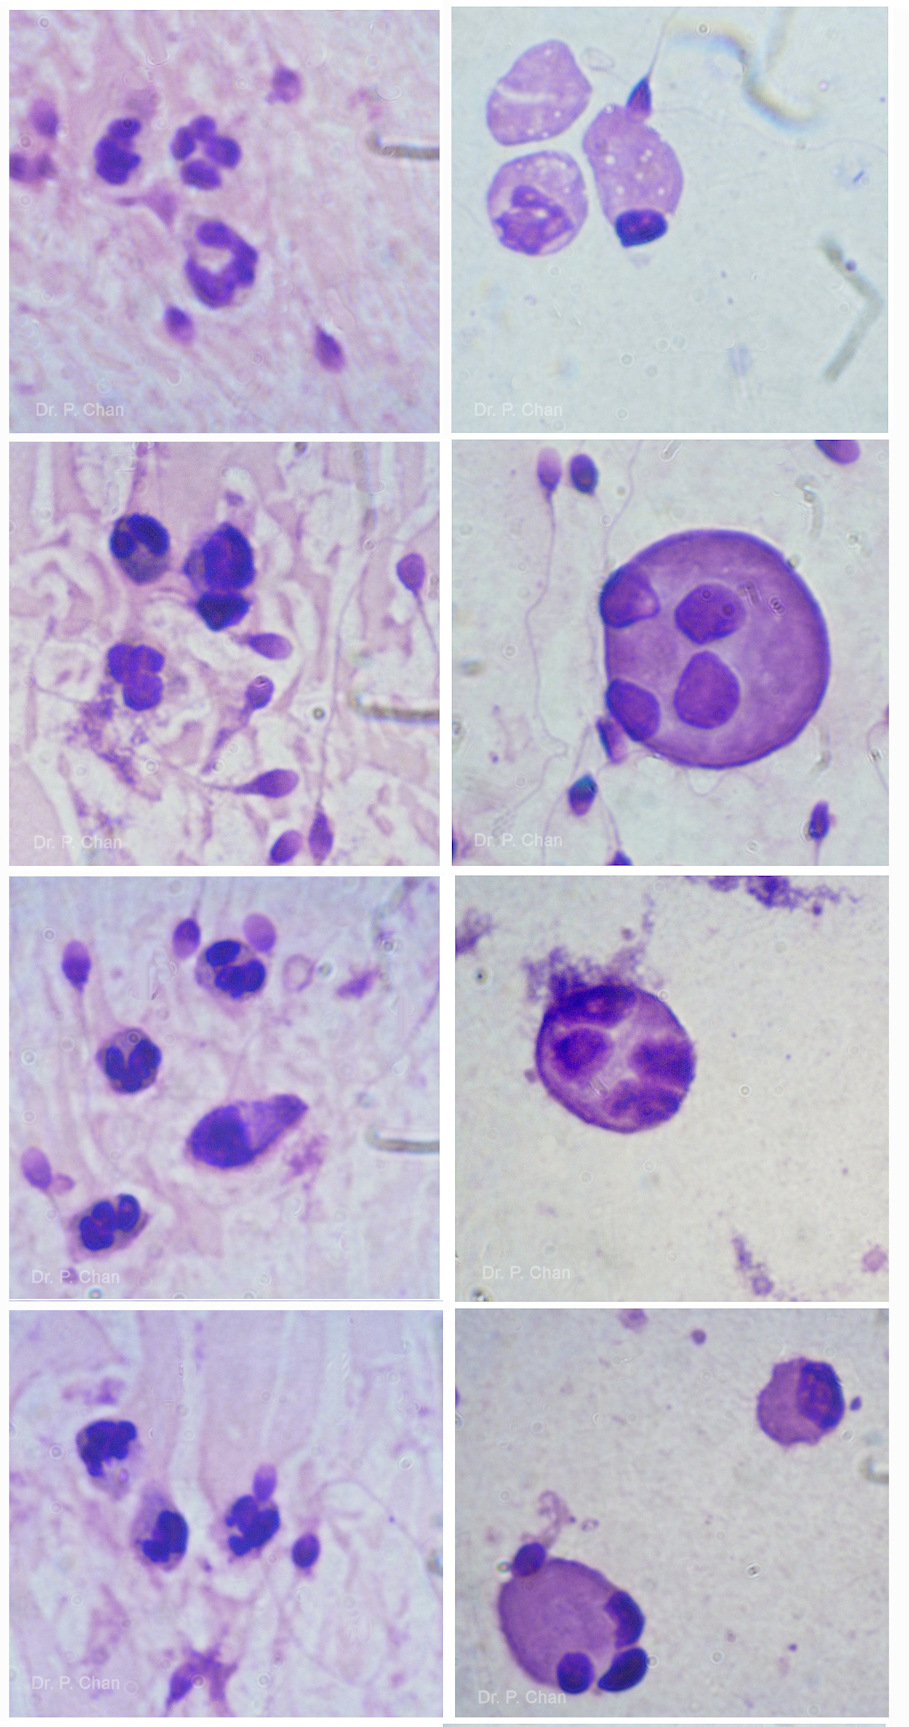 Difference between PMN leukocytes (left) and spermatids (right)